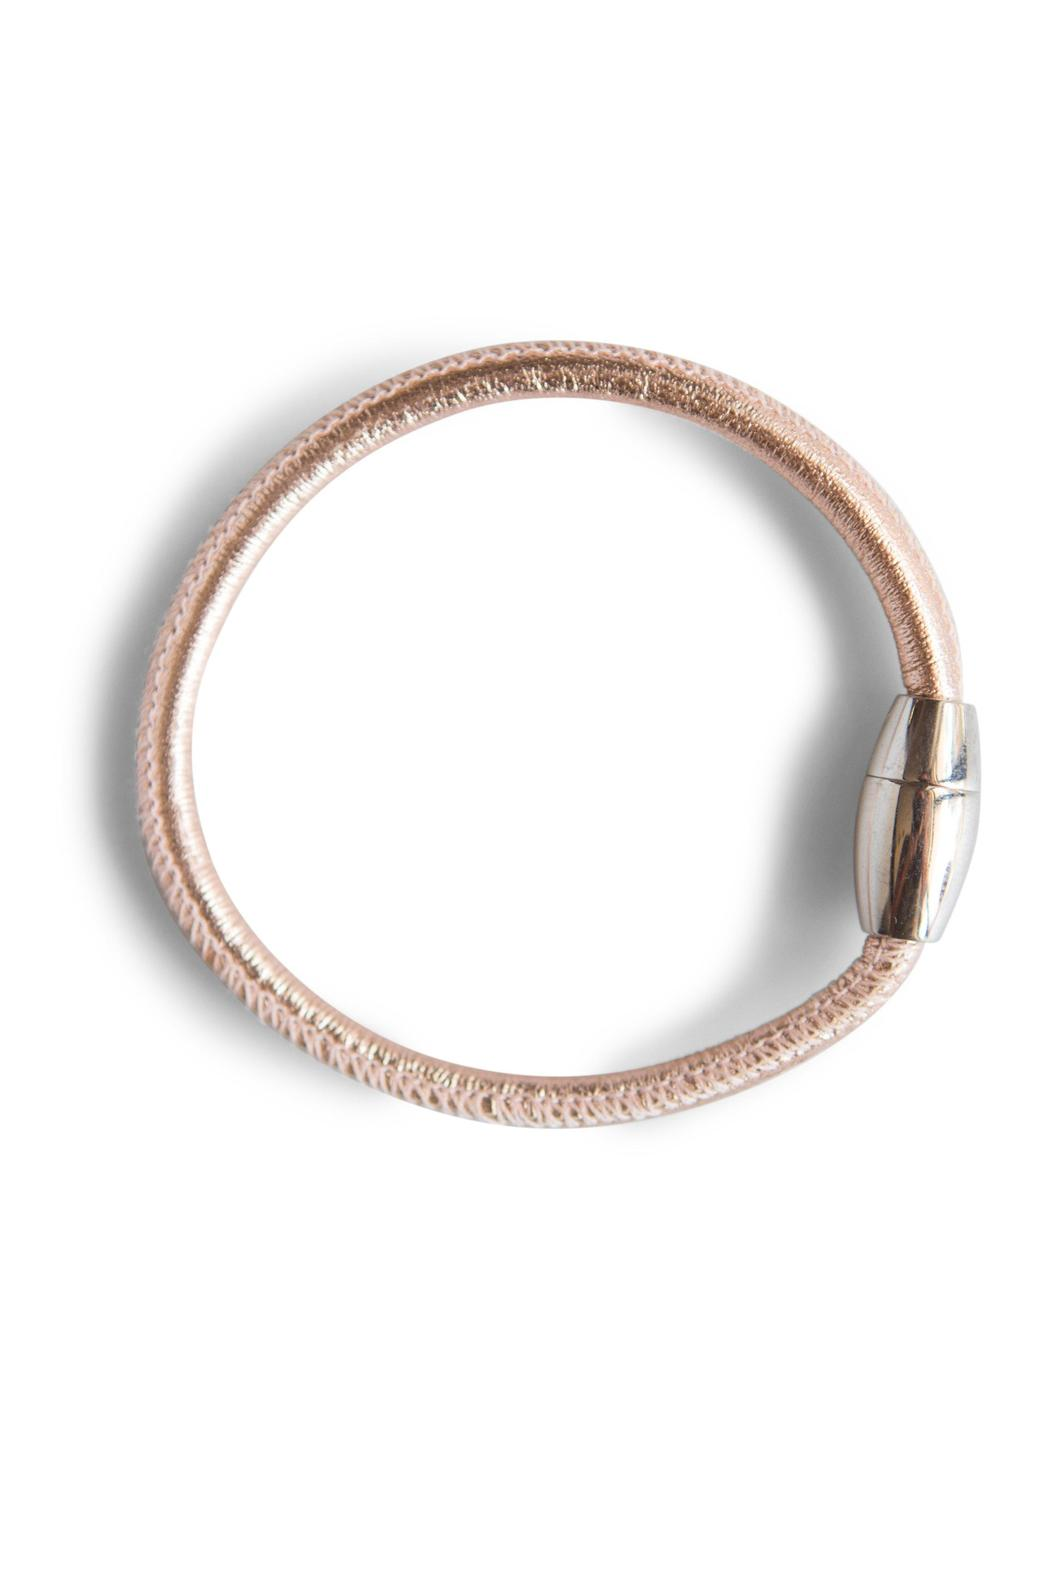 Sayulita Sol Jewelry Italian Leather Bracelet - Front Cropped Image